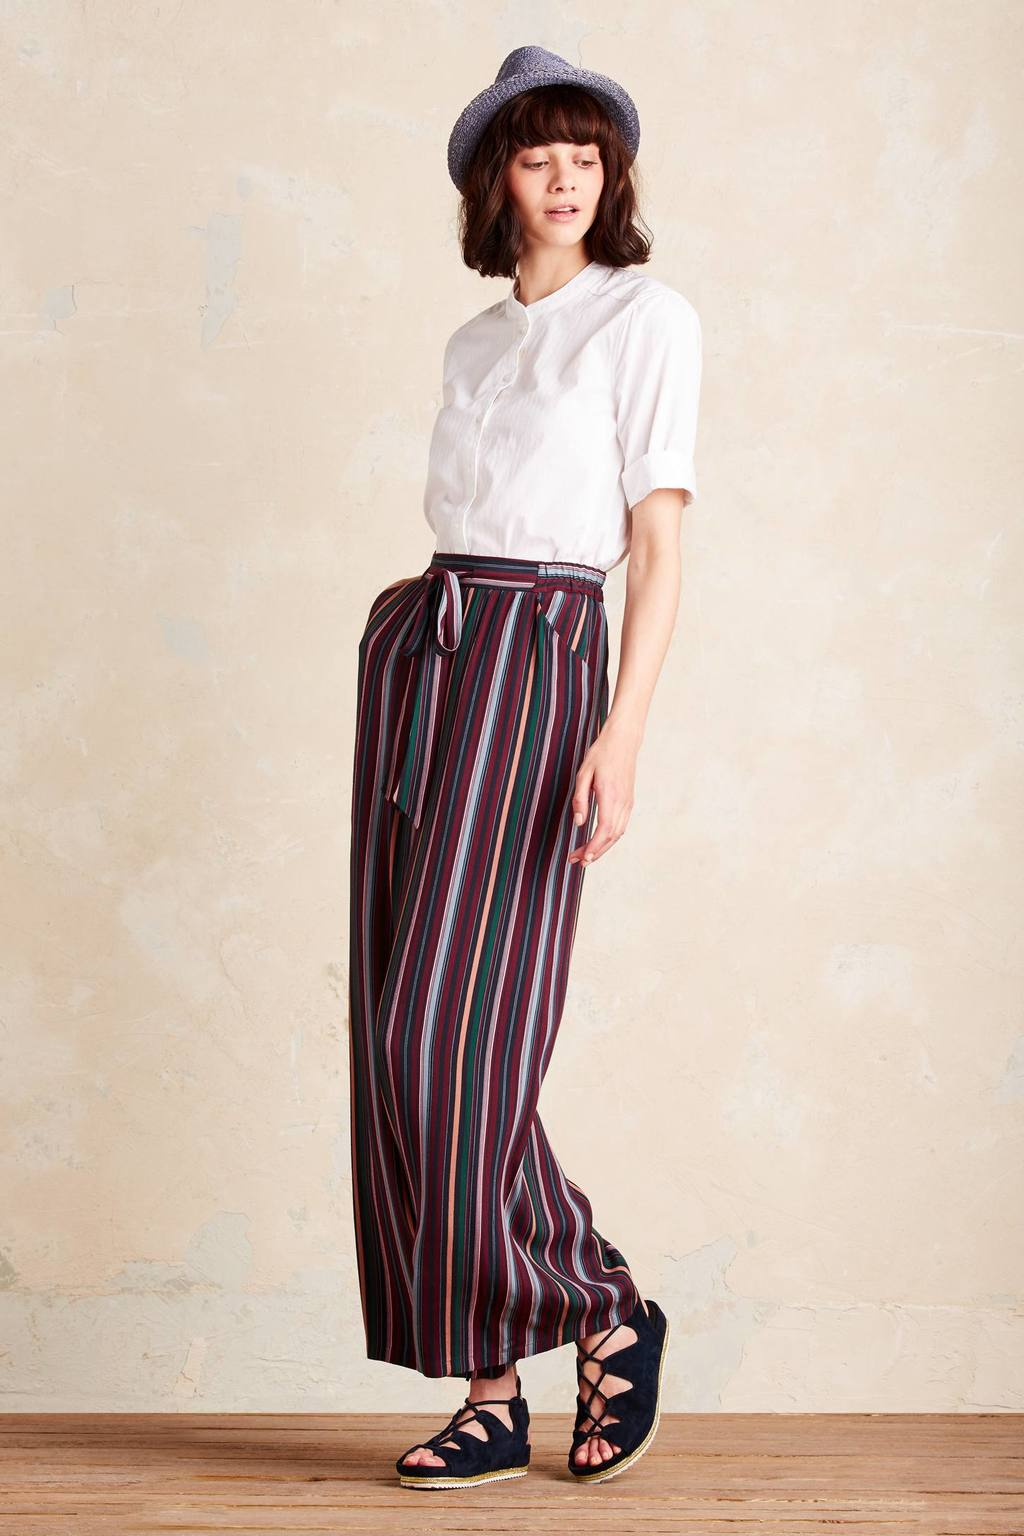 Sydney Striped Wide Leg Trousers, Purple - length: standard; pattern: striped; waist detail: belted waist/tie at waist/drawstring; waist: mid/regular rise; predominant colour: burgundy; secondary colour: light grey; occasions: casual; fibres: viscose/rayon - 100%; fit: wide leg; pattern type: fabric; texture group: other - light to midweight; style: standard; multicoloured: multicoloured; season: a/w 2016; wardrobe: highlight